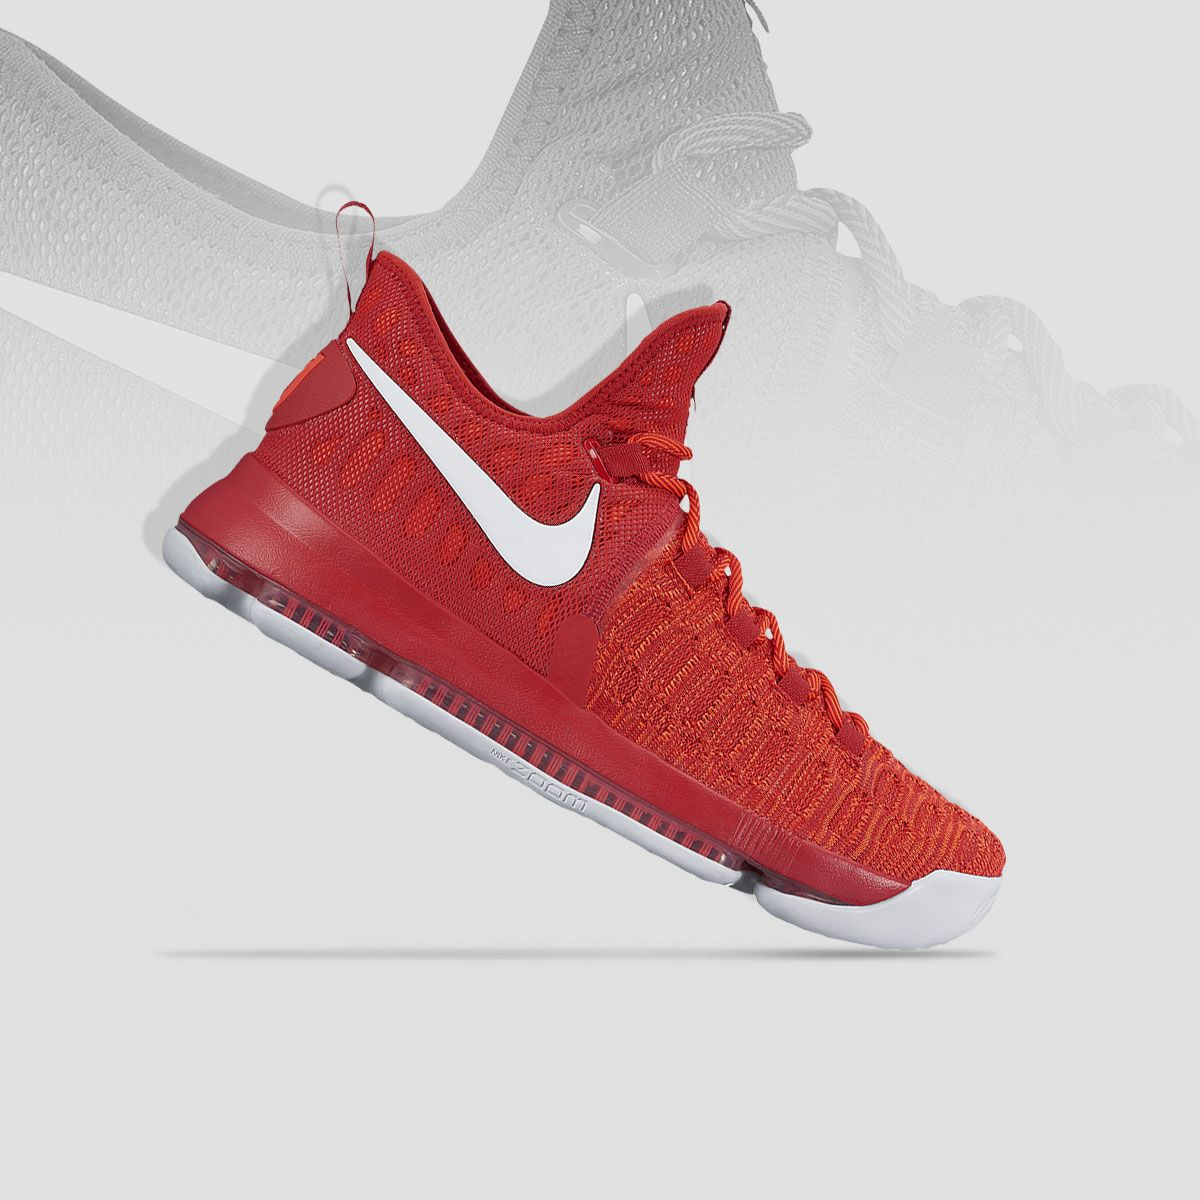 cfd7b1644c117c Stay lethal on the court with the new  Varsity Red  Nike KD 9s — out now.